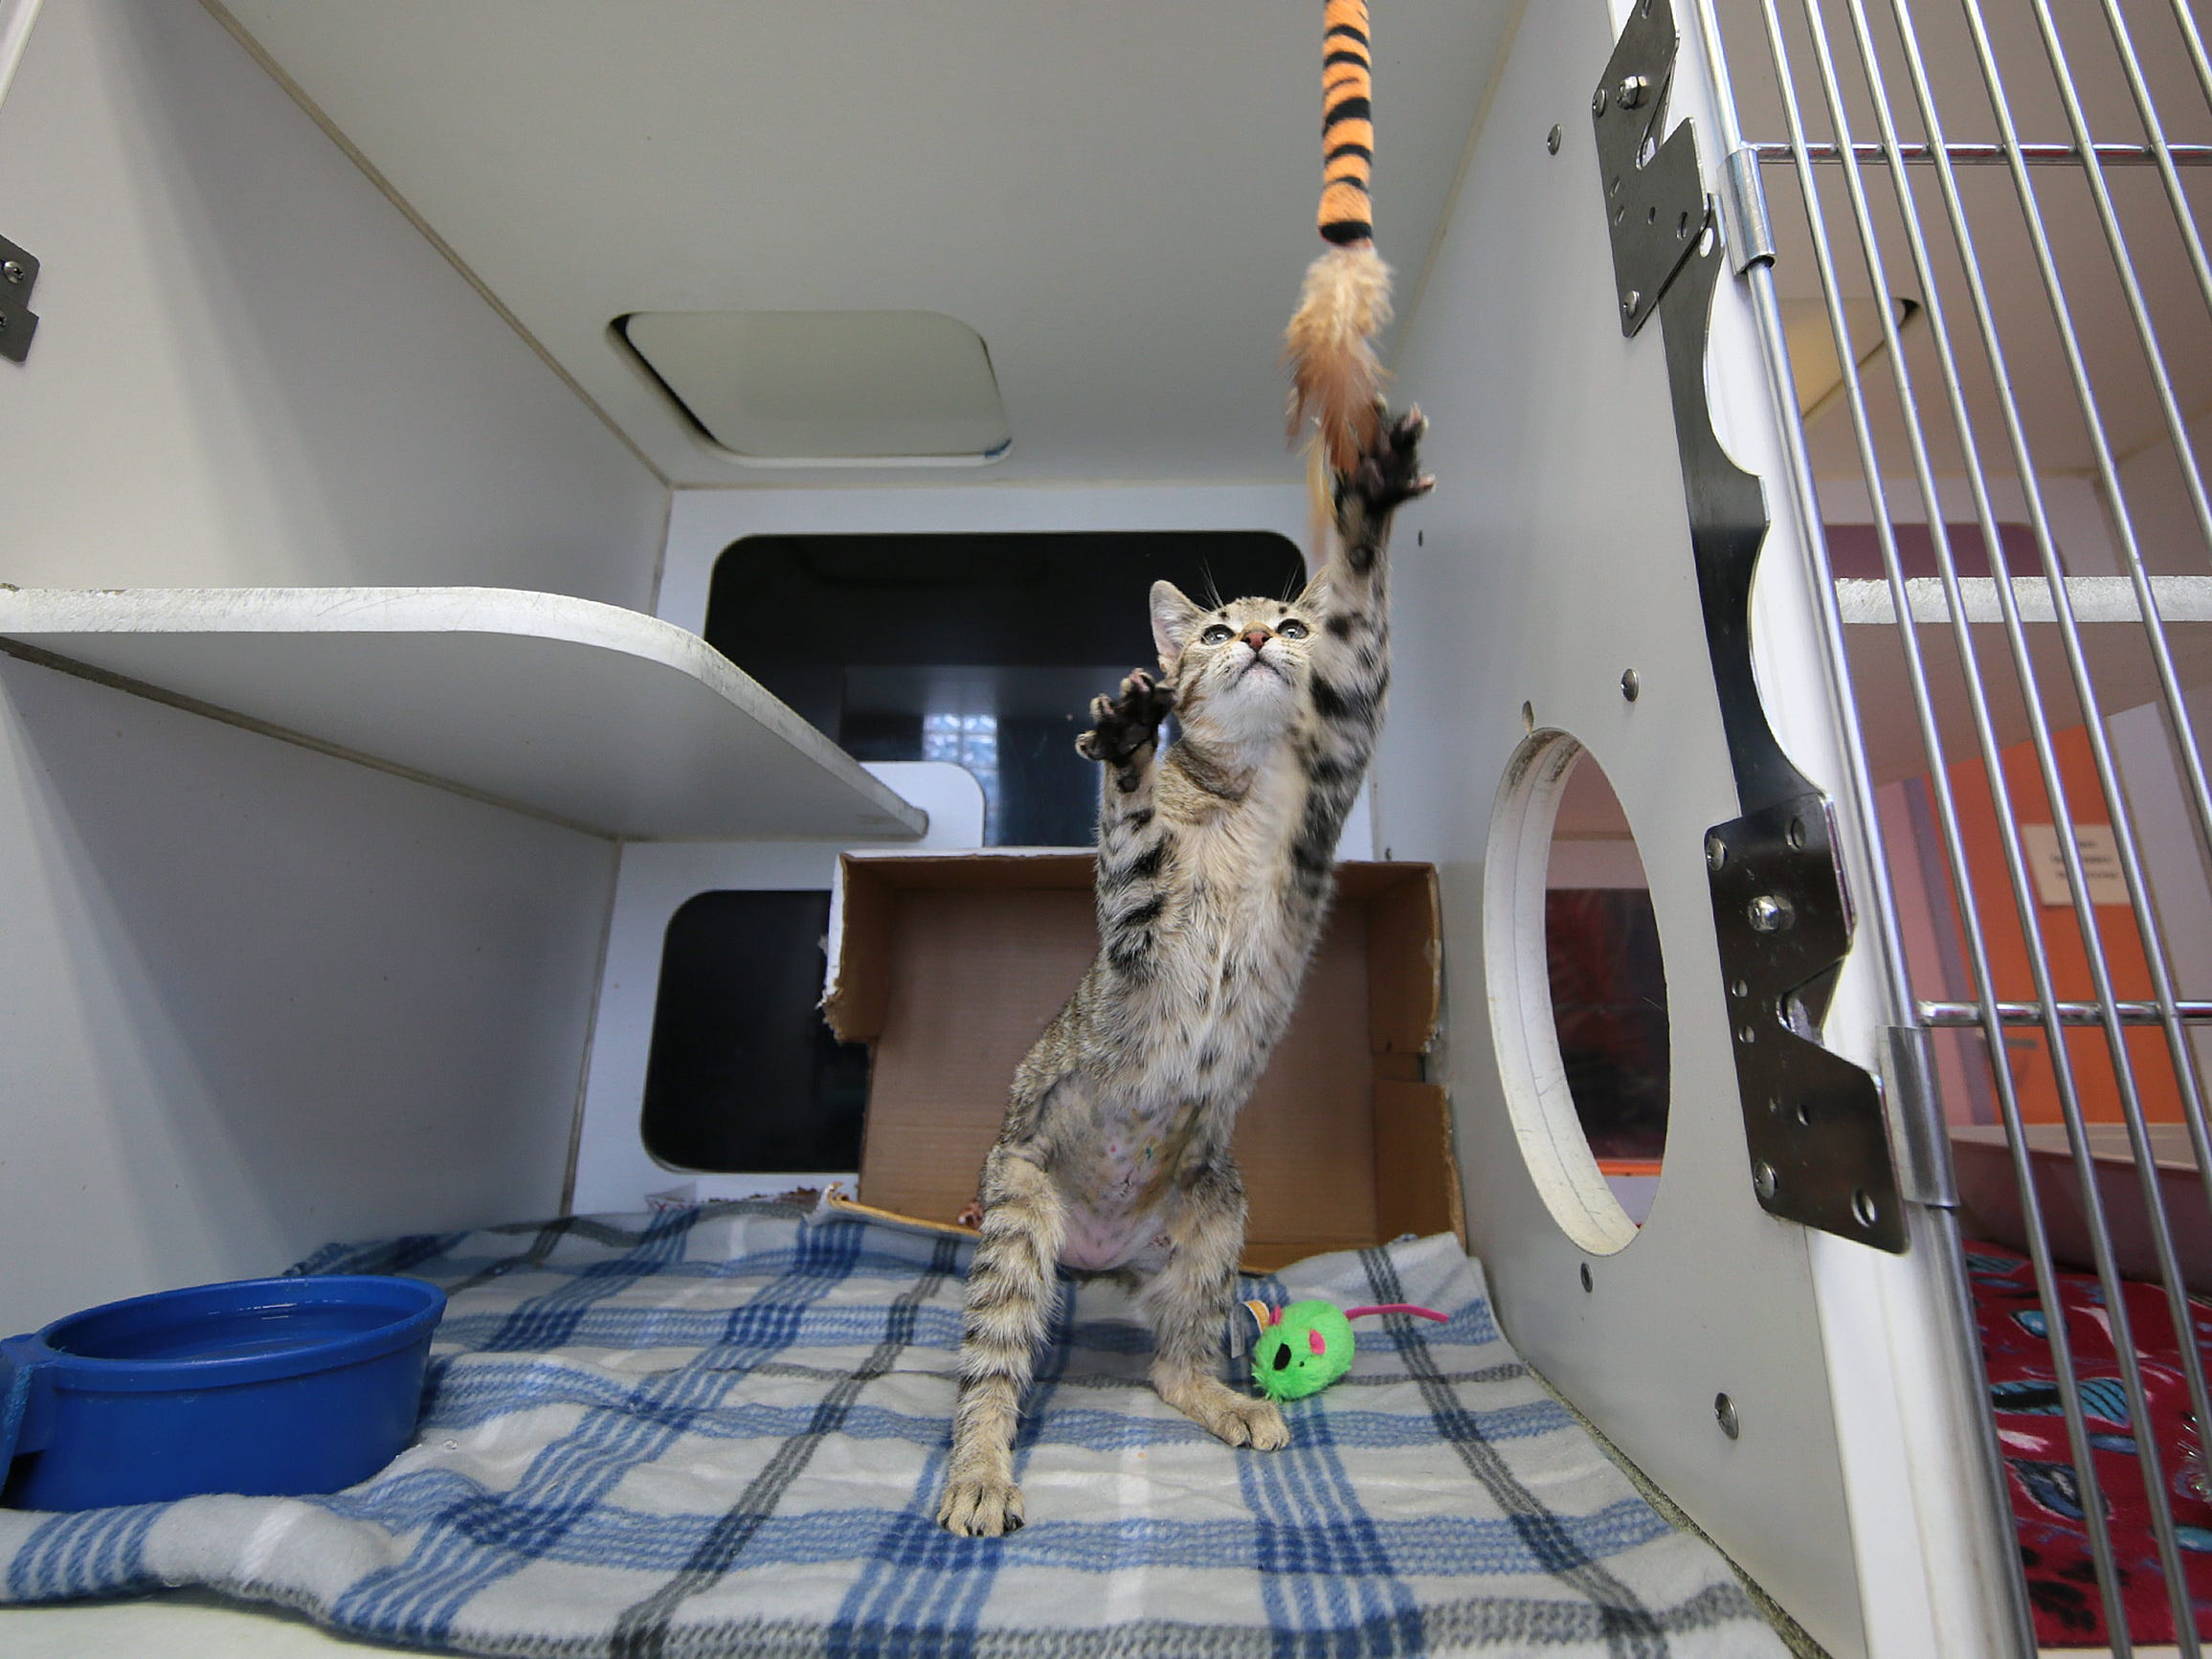 The City of El Paso Animal Services are preparing for their free adoption day this Saturday. The shelter is needing to make room for an expected influx of animals in the spring.